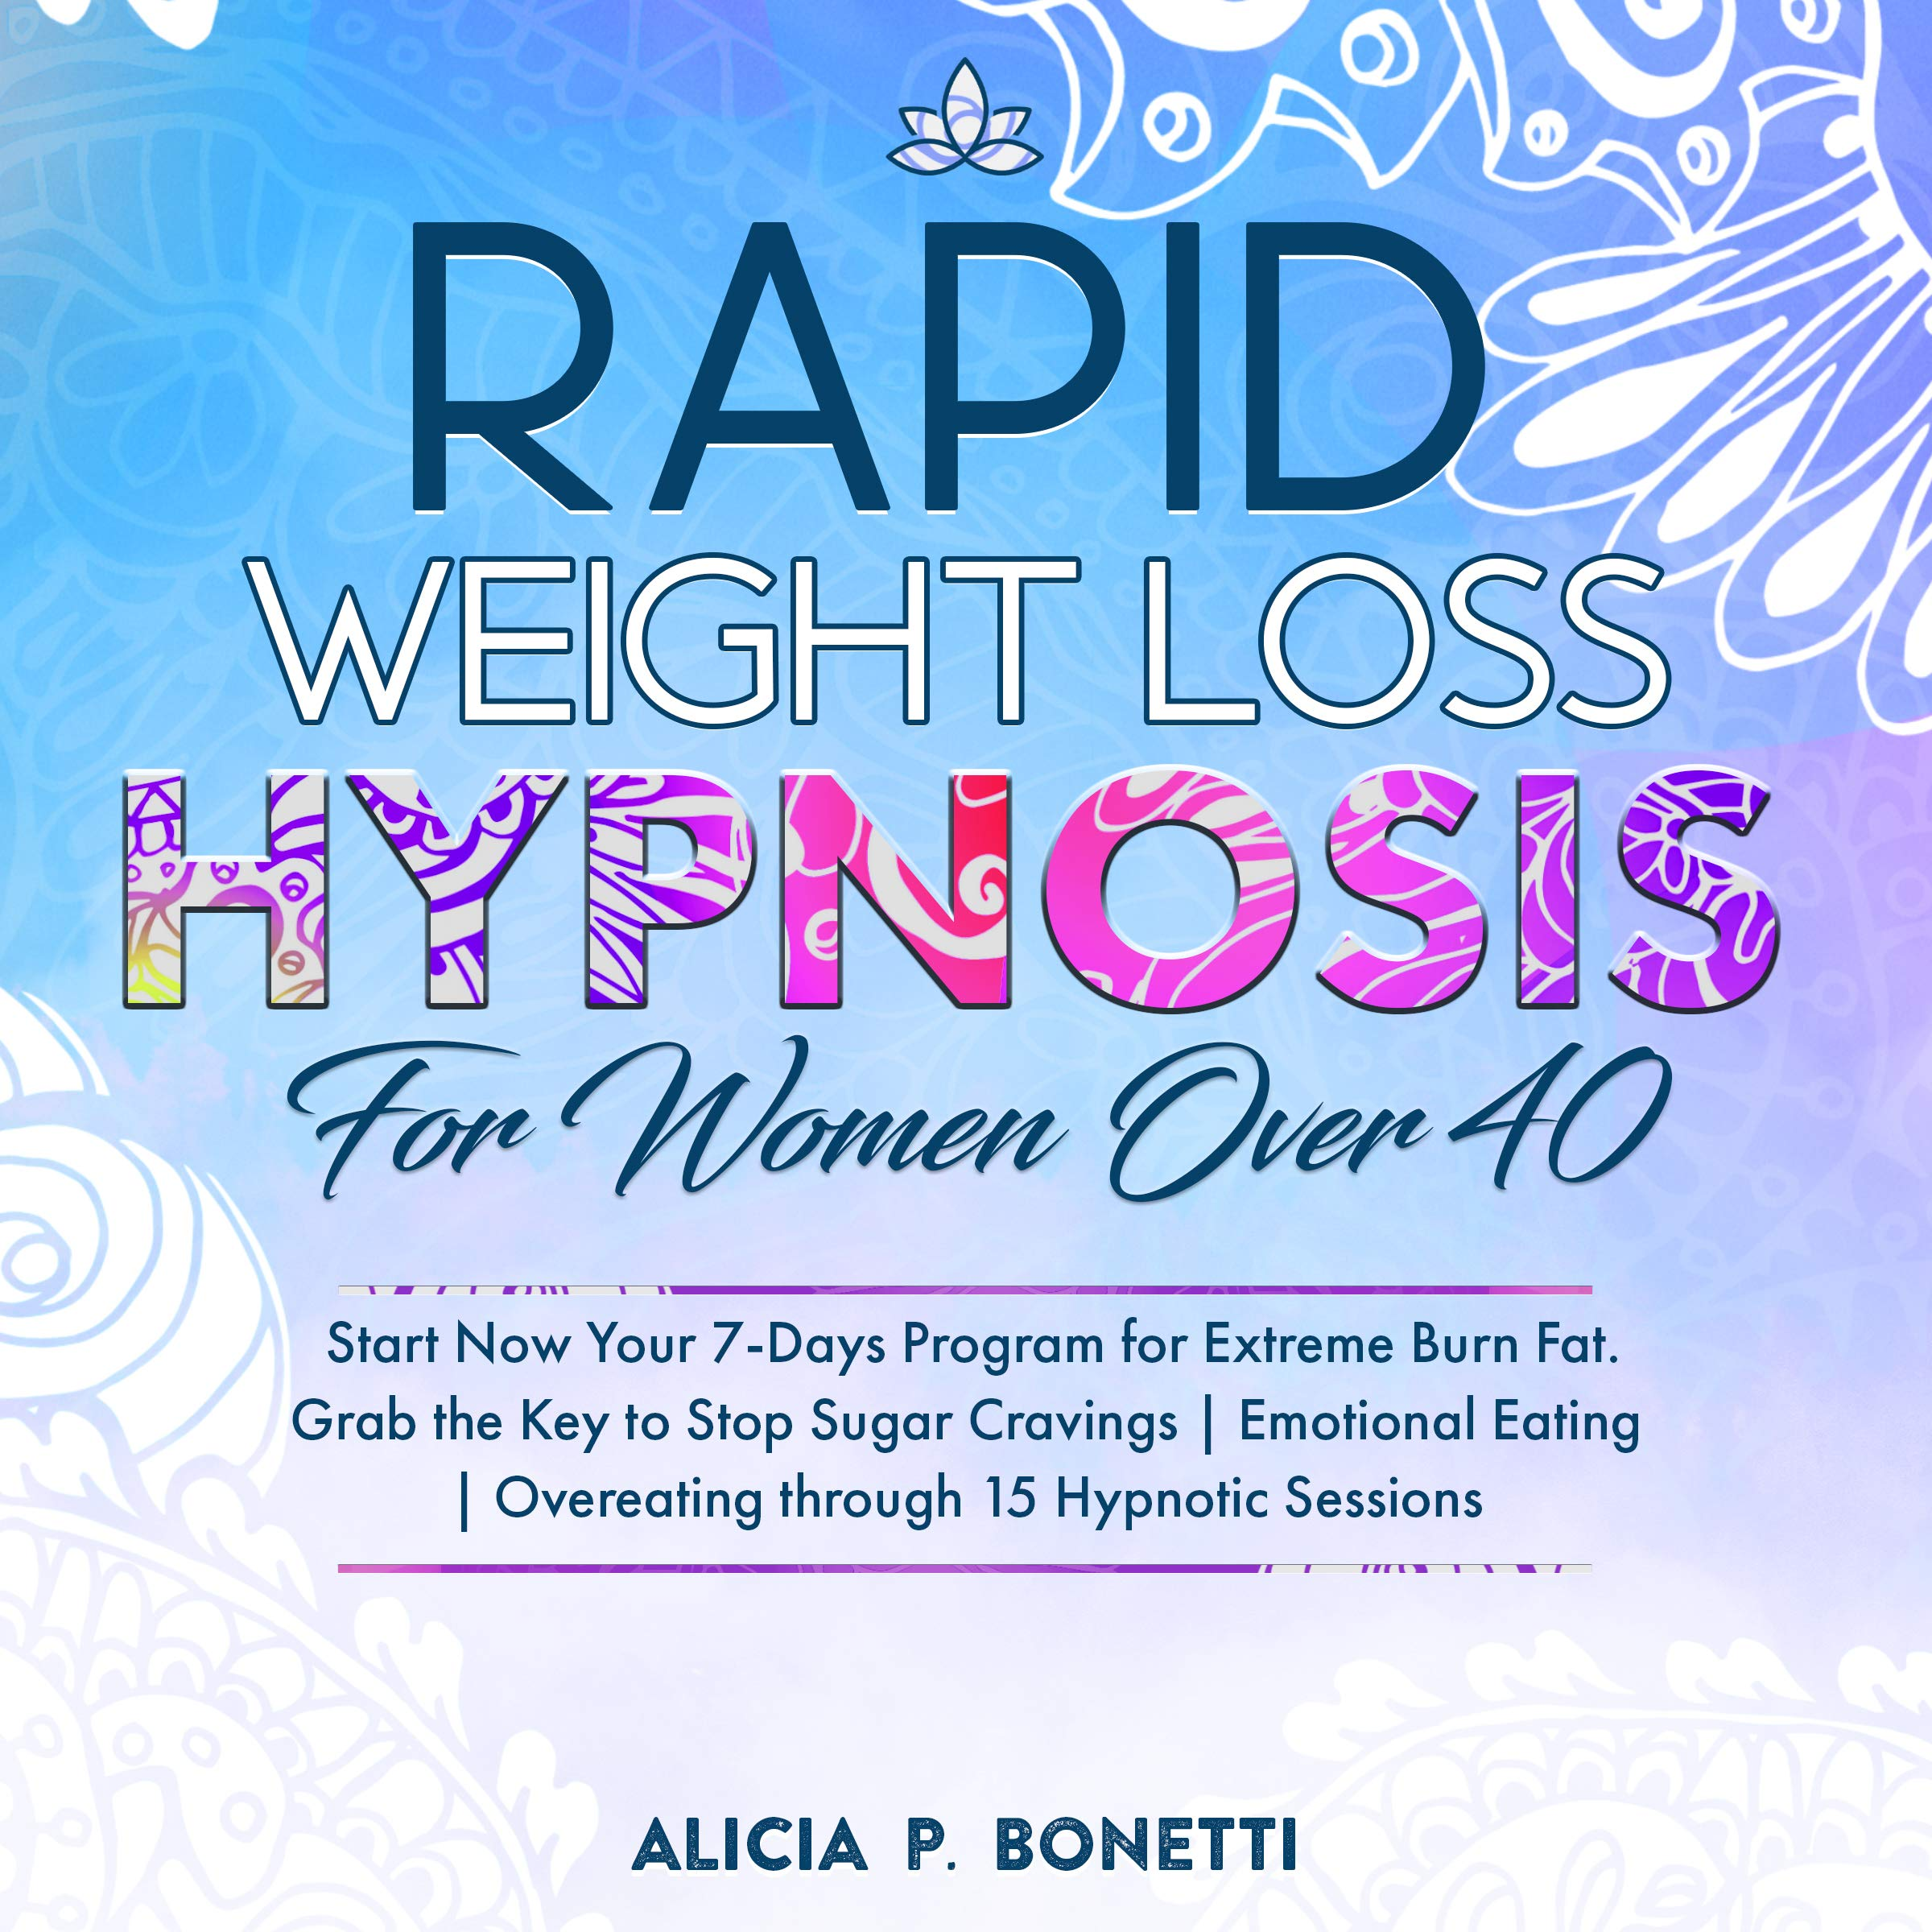 Rapid Weight Loss Hypnosis For Women Over 40: Start Now Your 7-Days Program for Extreme Burn Fat. Grab the Key to Stop Sugar Cravings | Emotional Eating | Overeating through 15 Hypnotic Sessions.